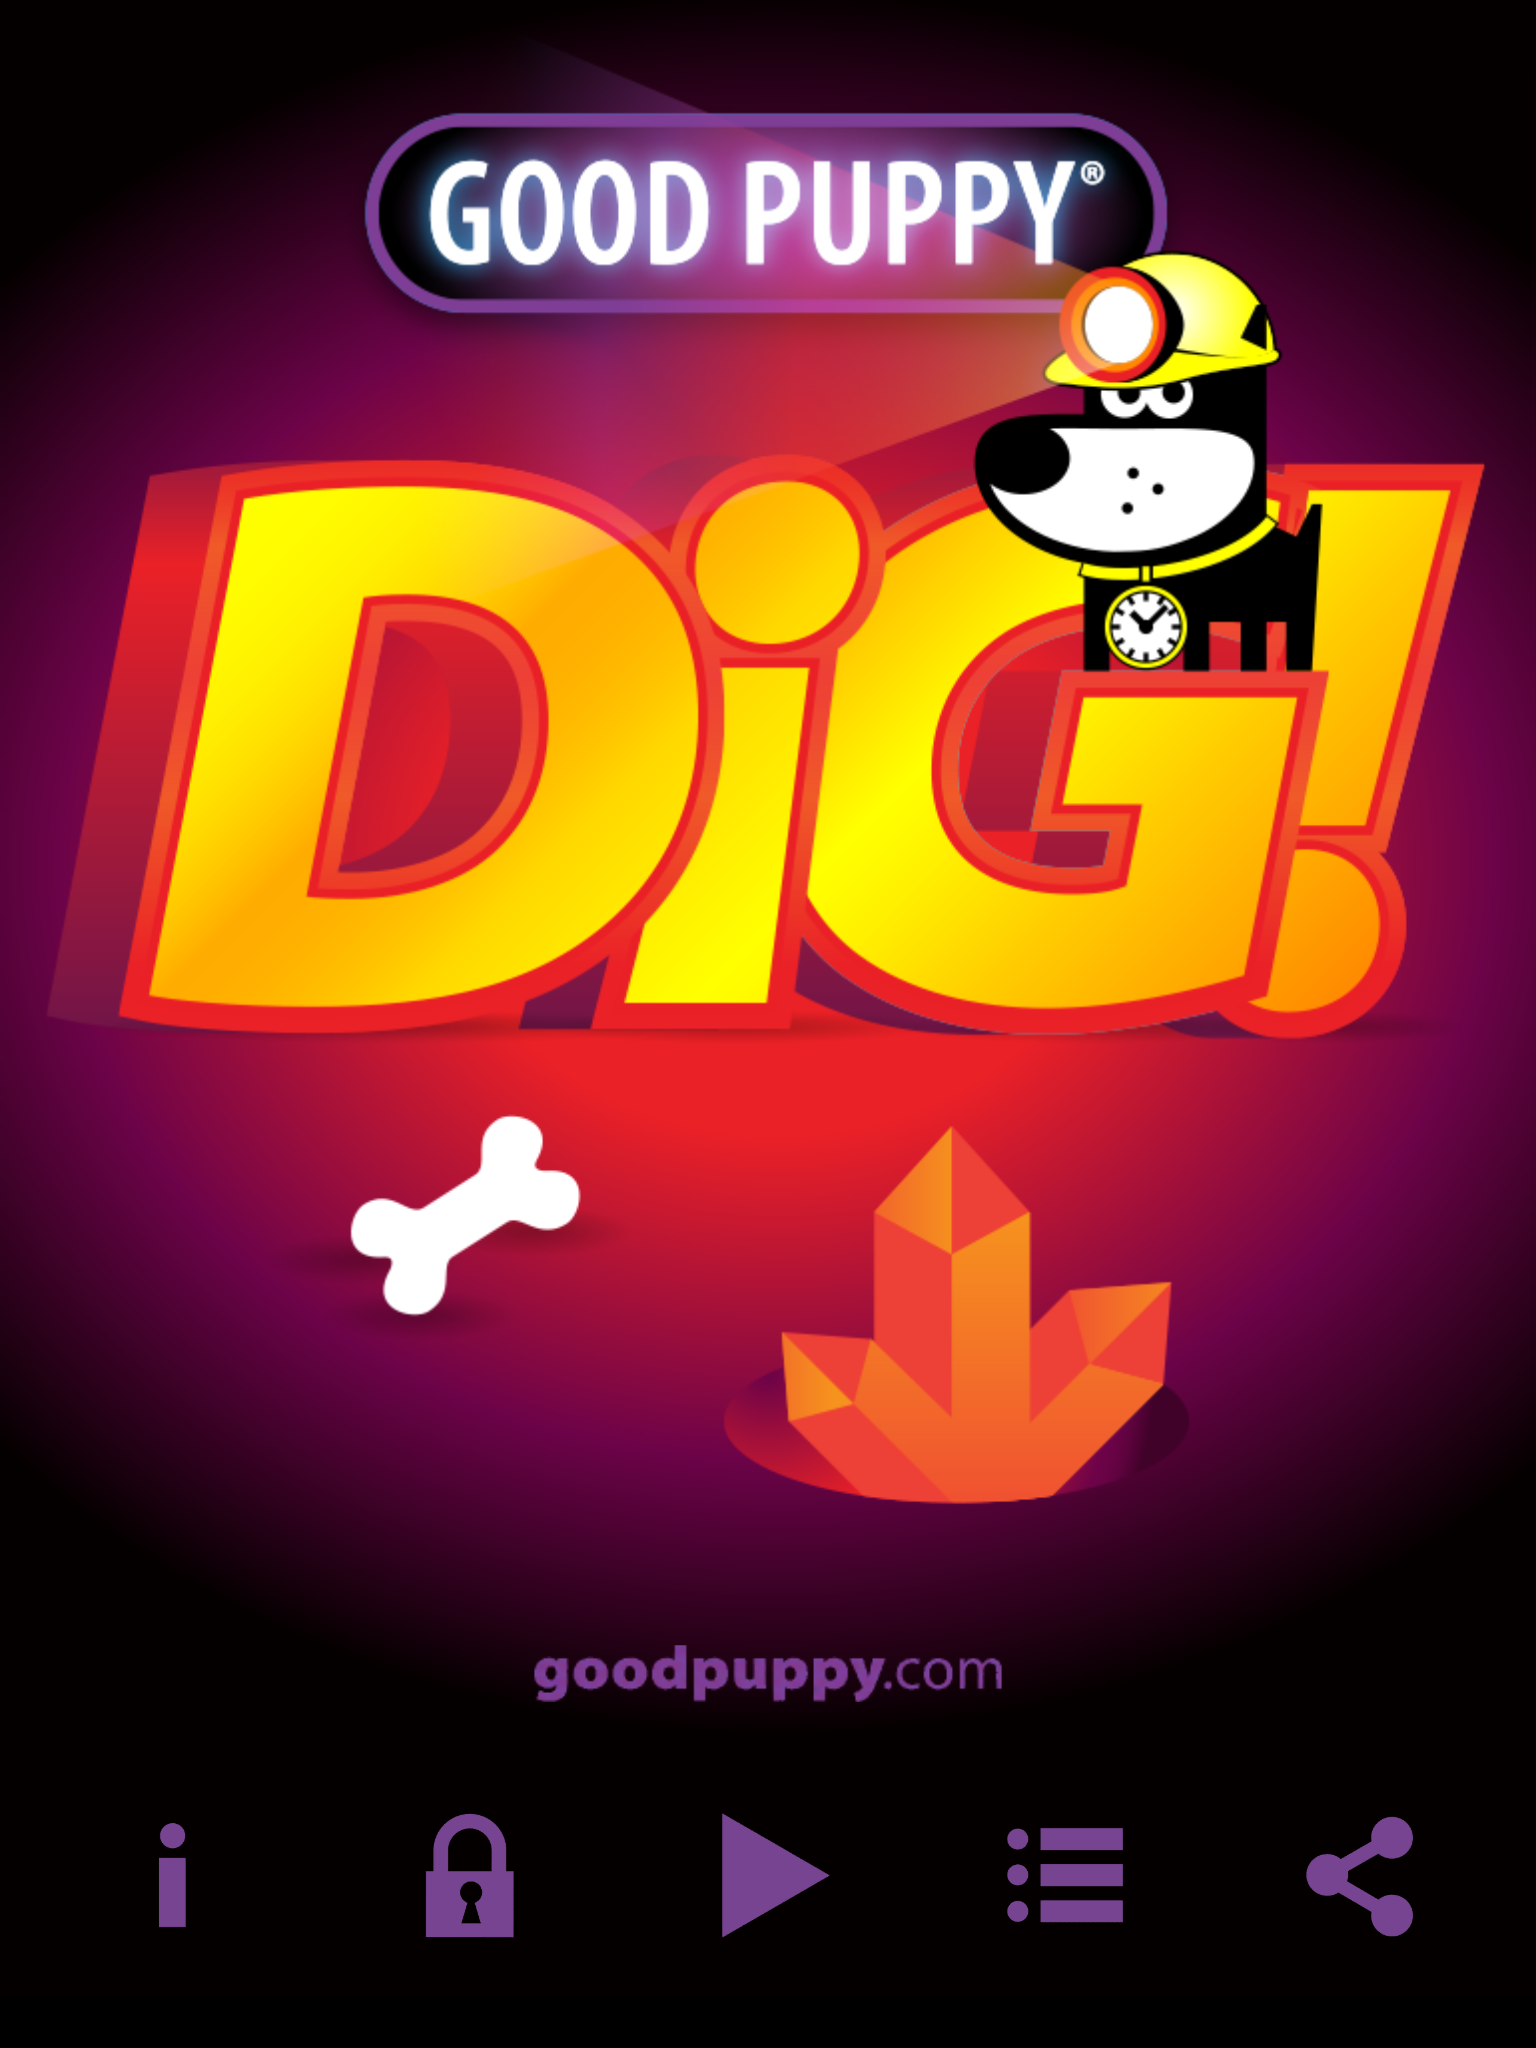 GOOD-PUPPY-DIG-Infinite-Runner-Fast-Retro-Arcade-Game-1.png